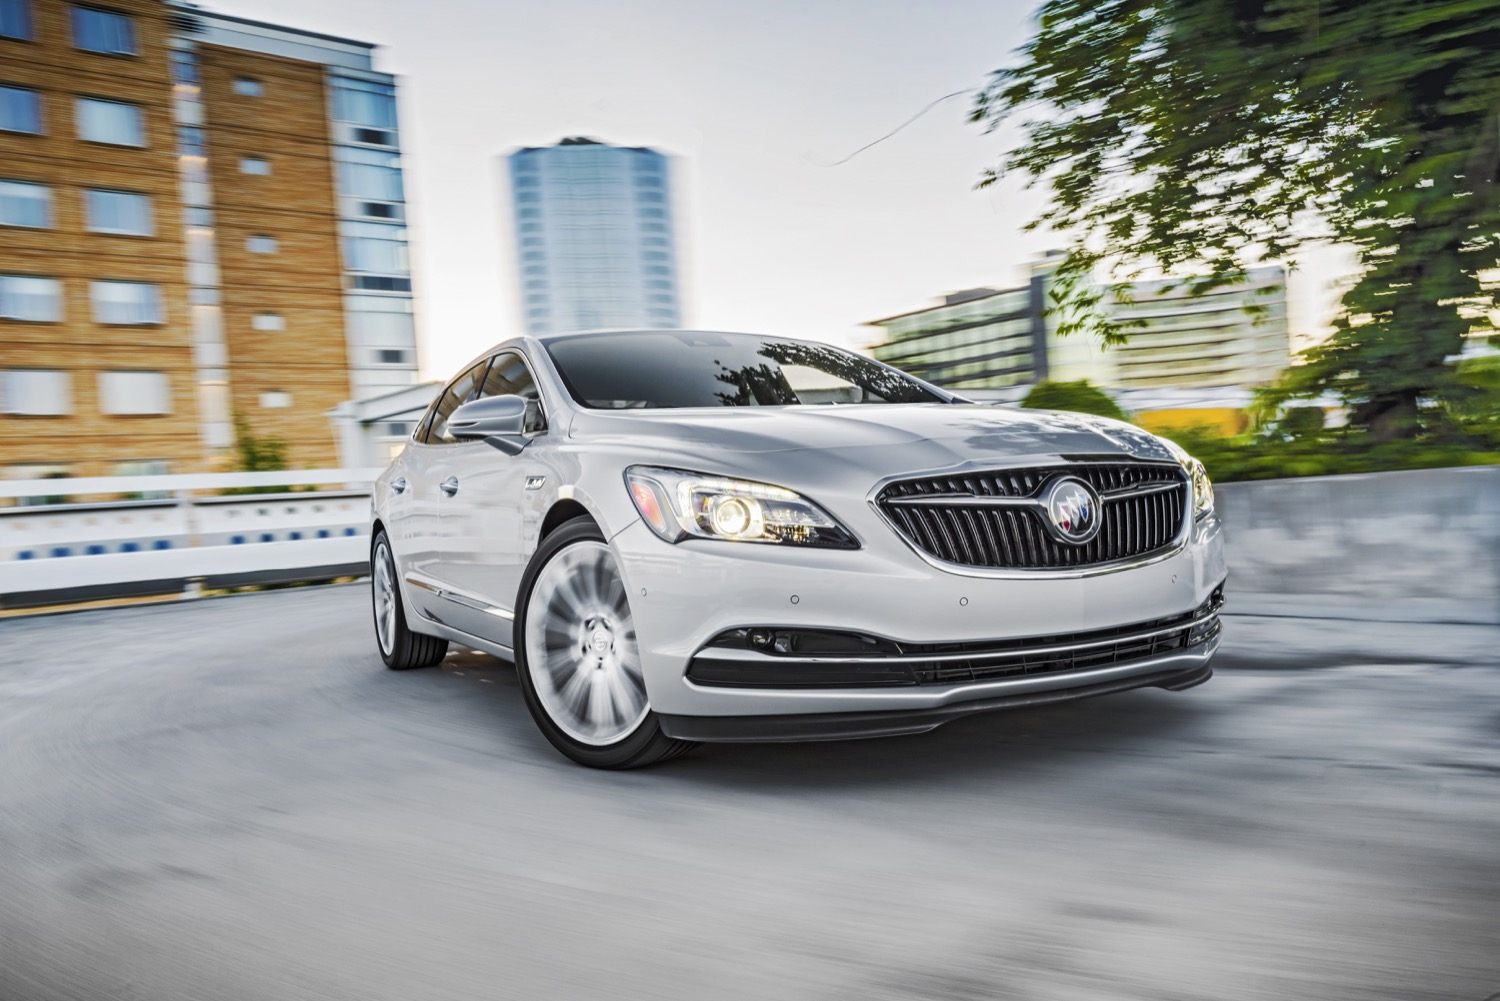 Buick Lacrosse Discount Totals $9,000 February 2020 | Gm 2021 Buick Lacrosse Lease, Reviews, Msrp